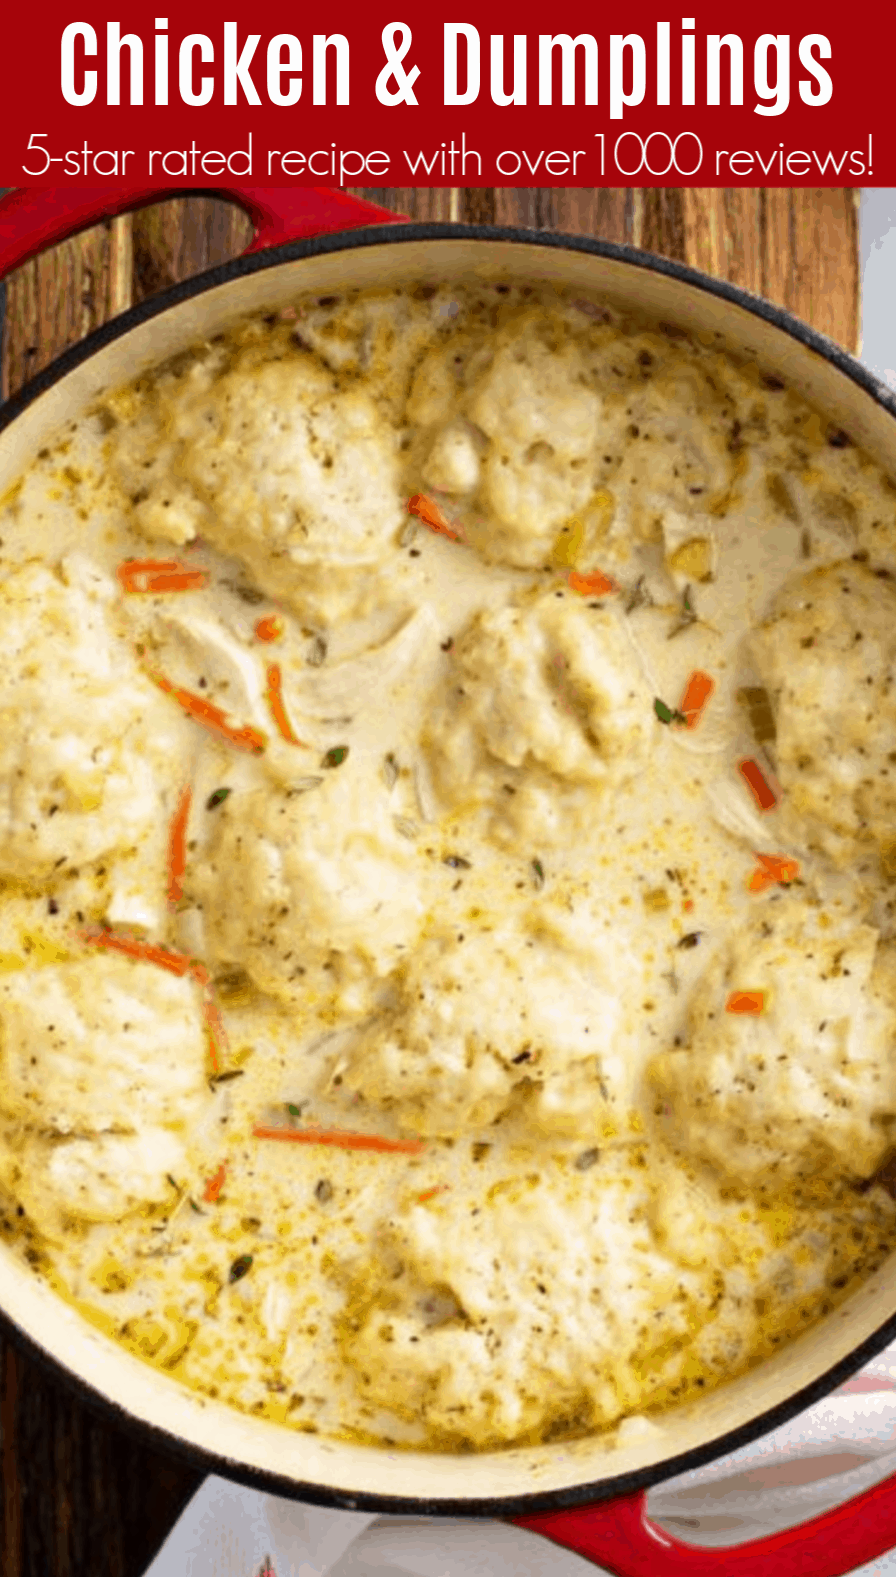 Old Fashioned Chicken & Dumplings - Fluffy Homemad